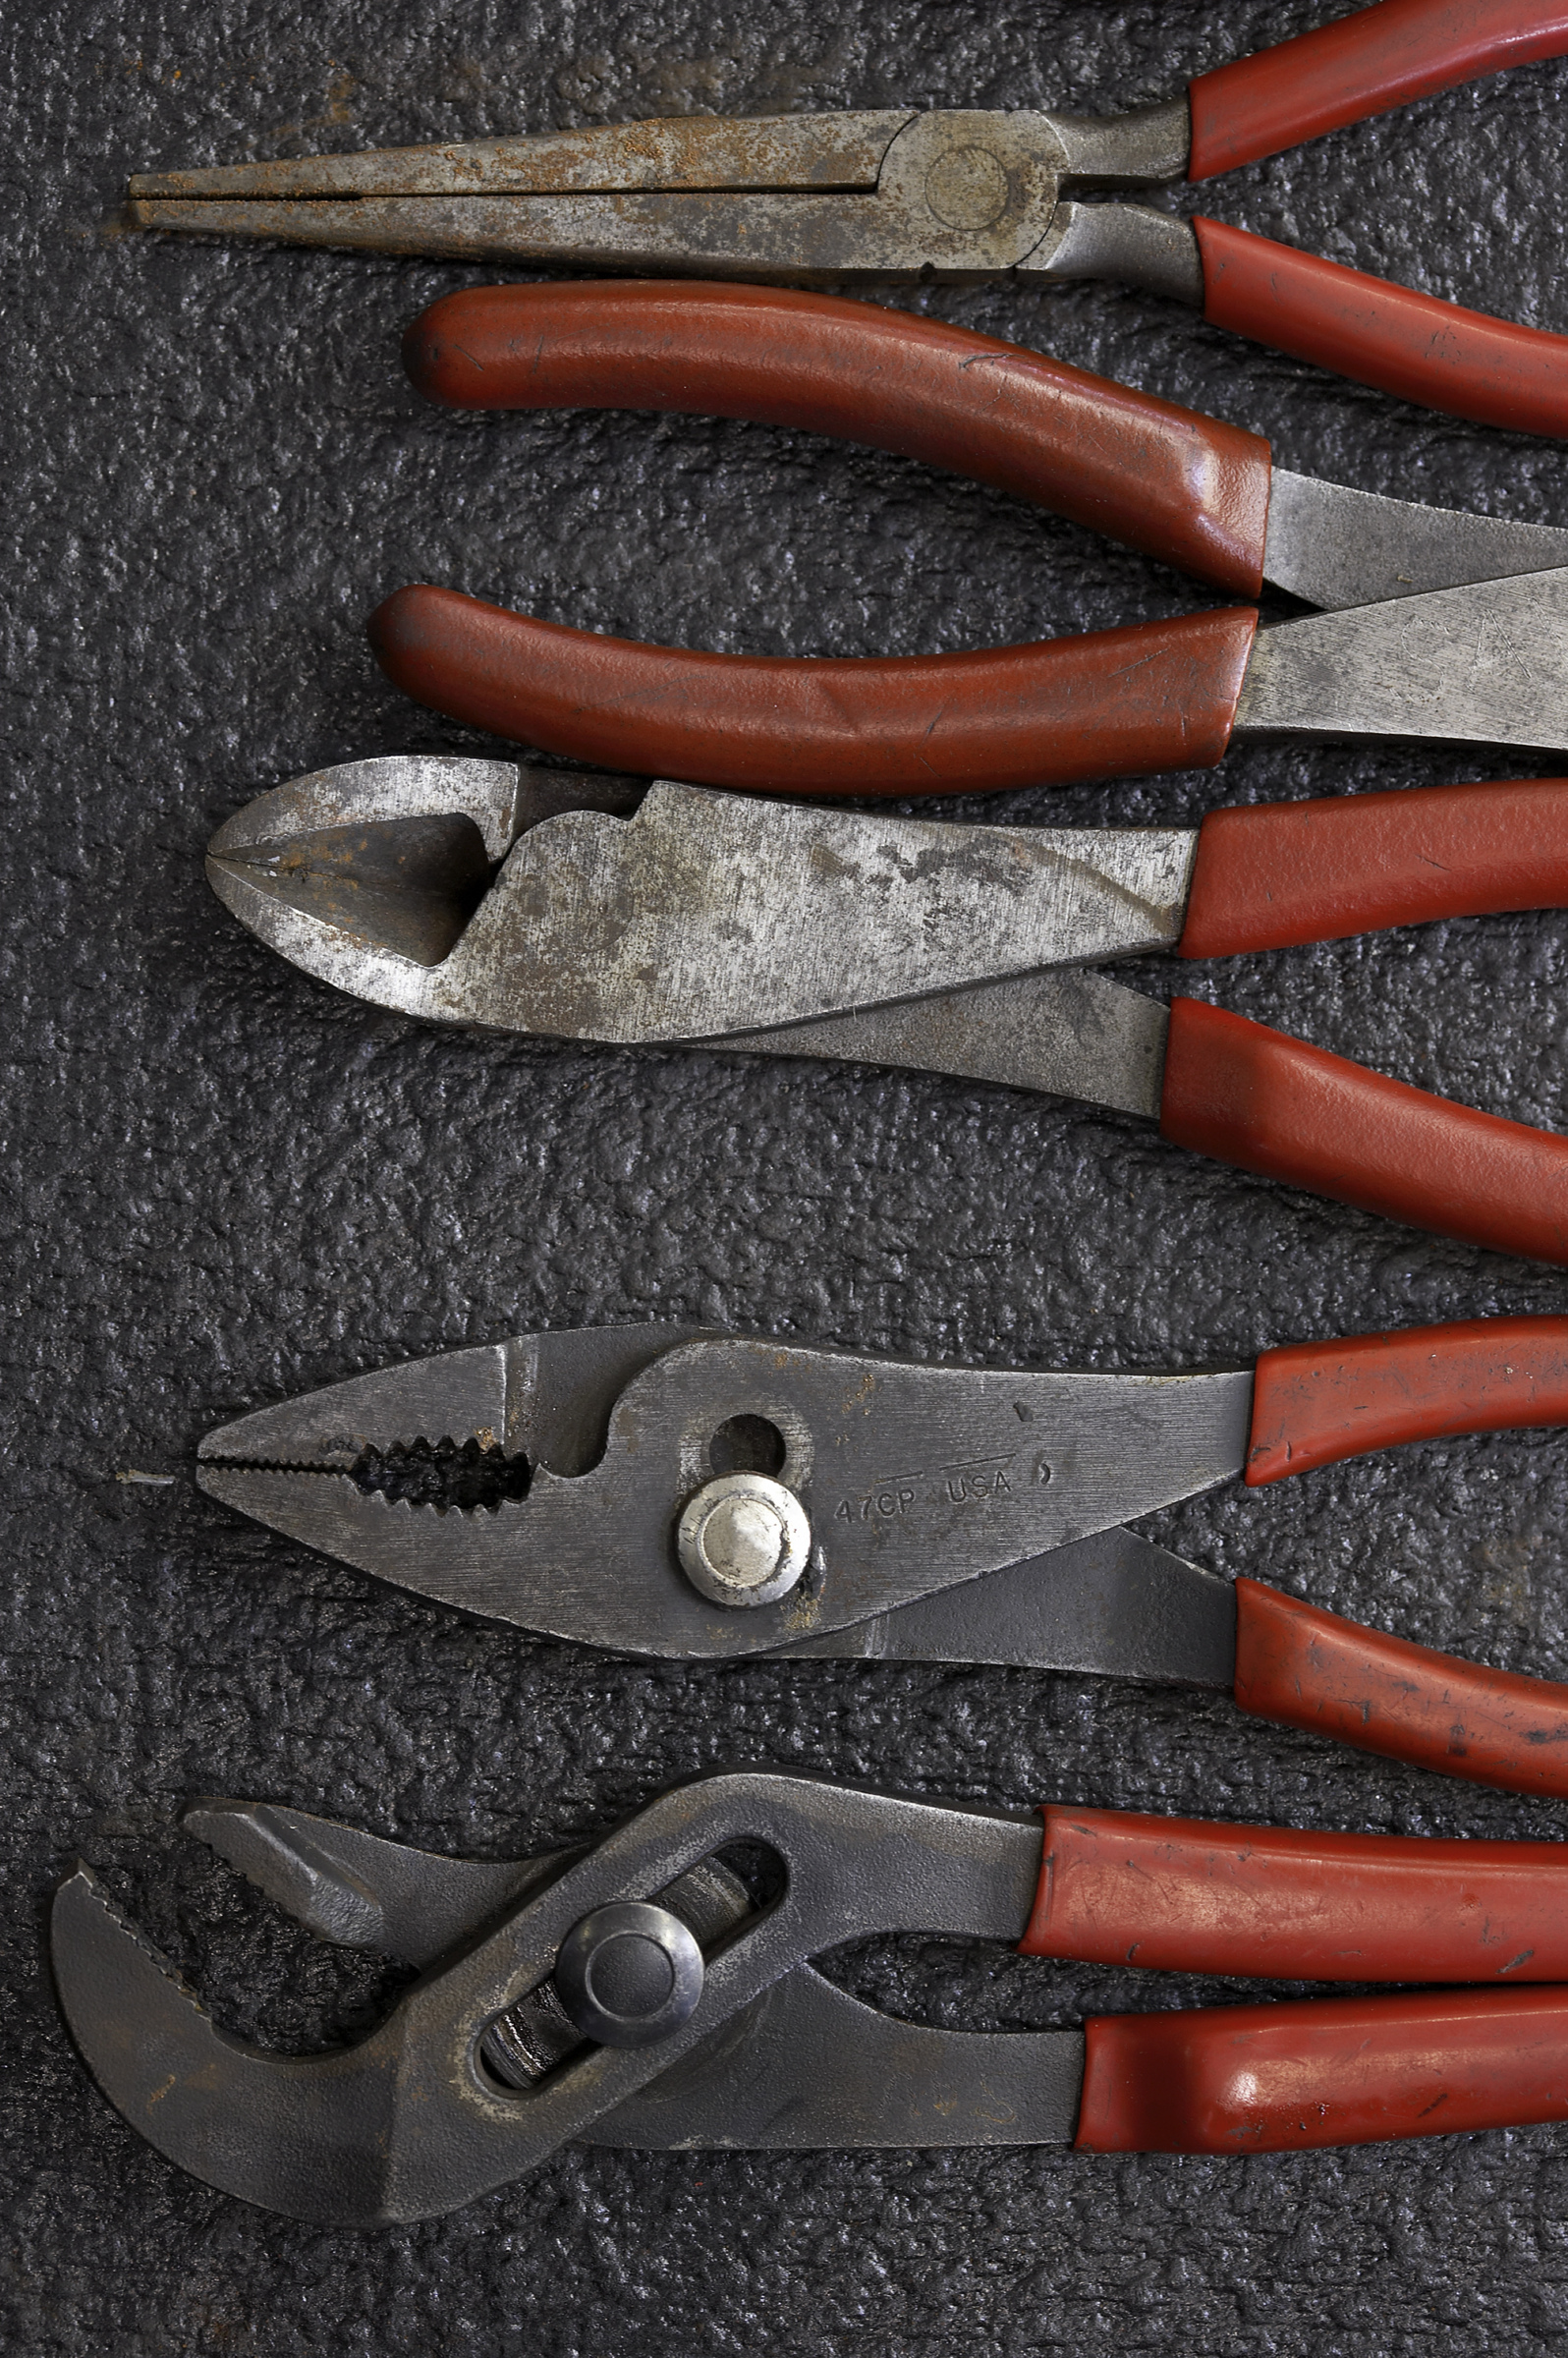 various tools such as pliers and clamps